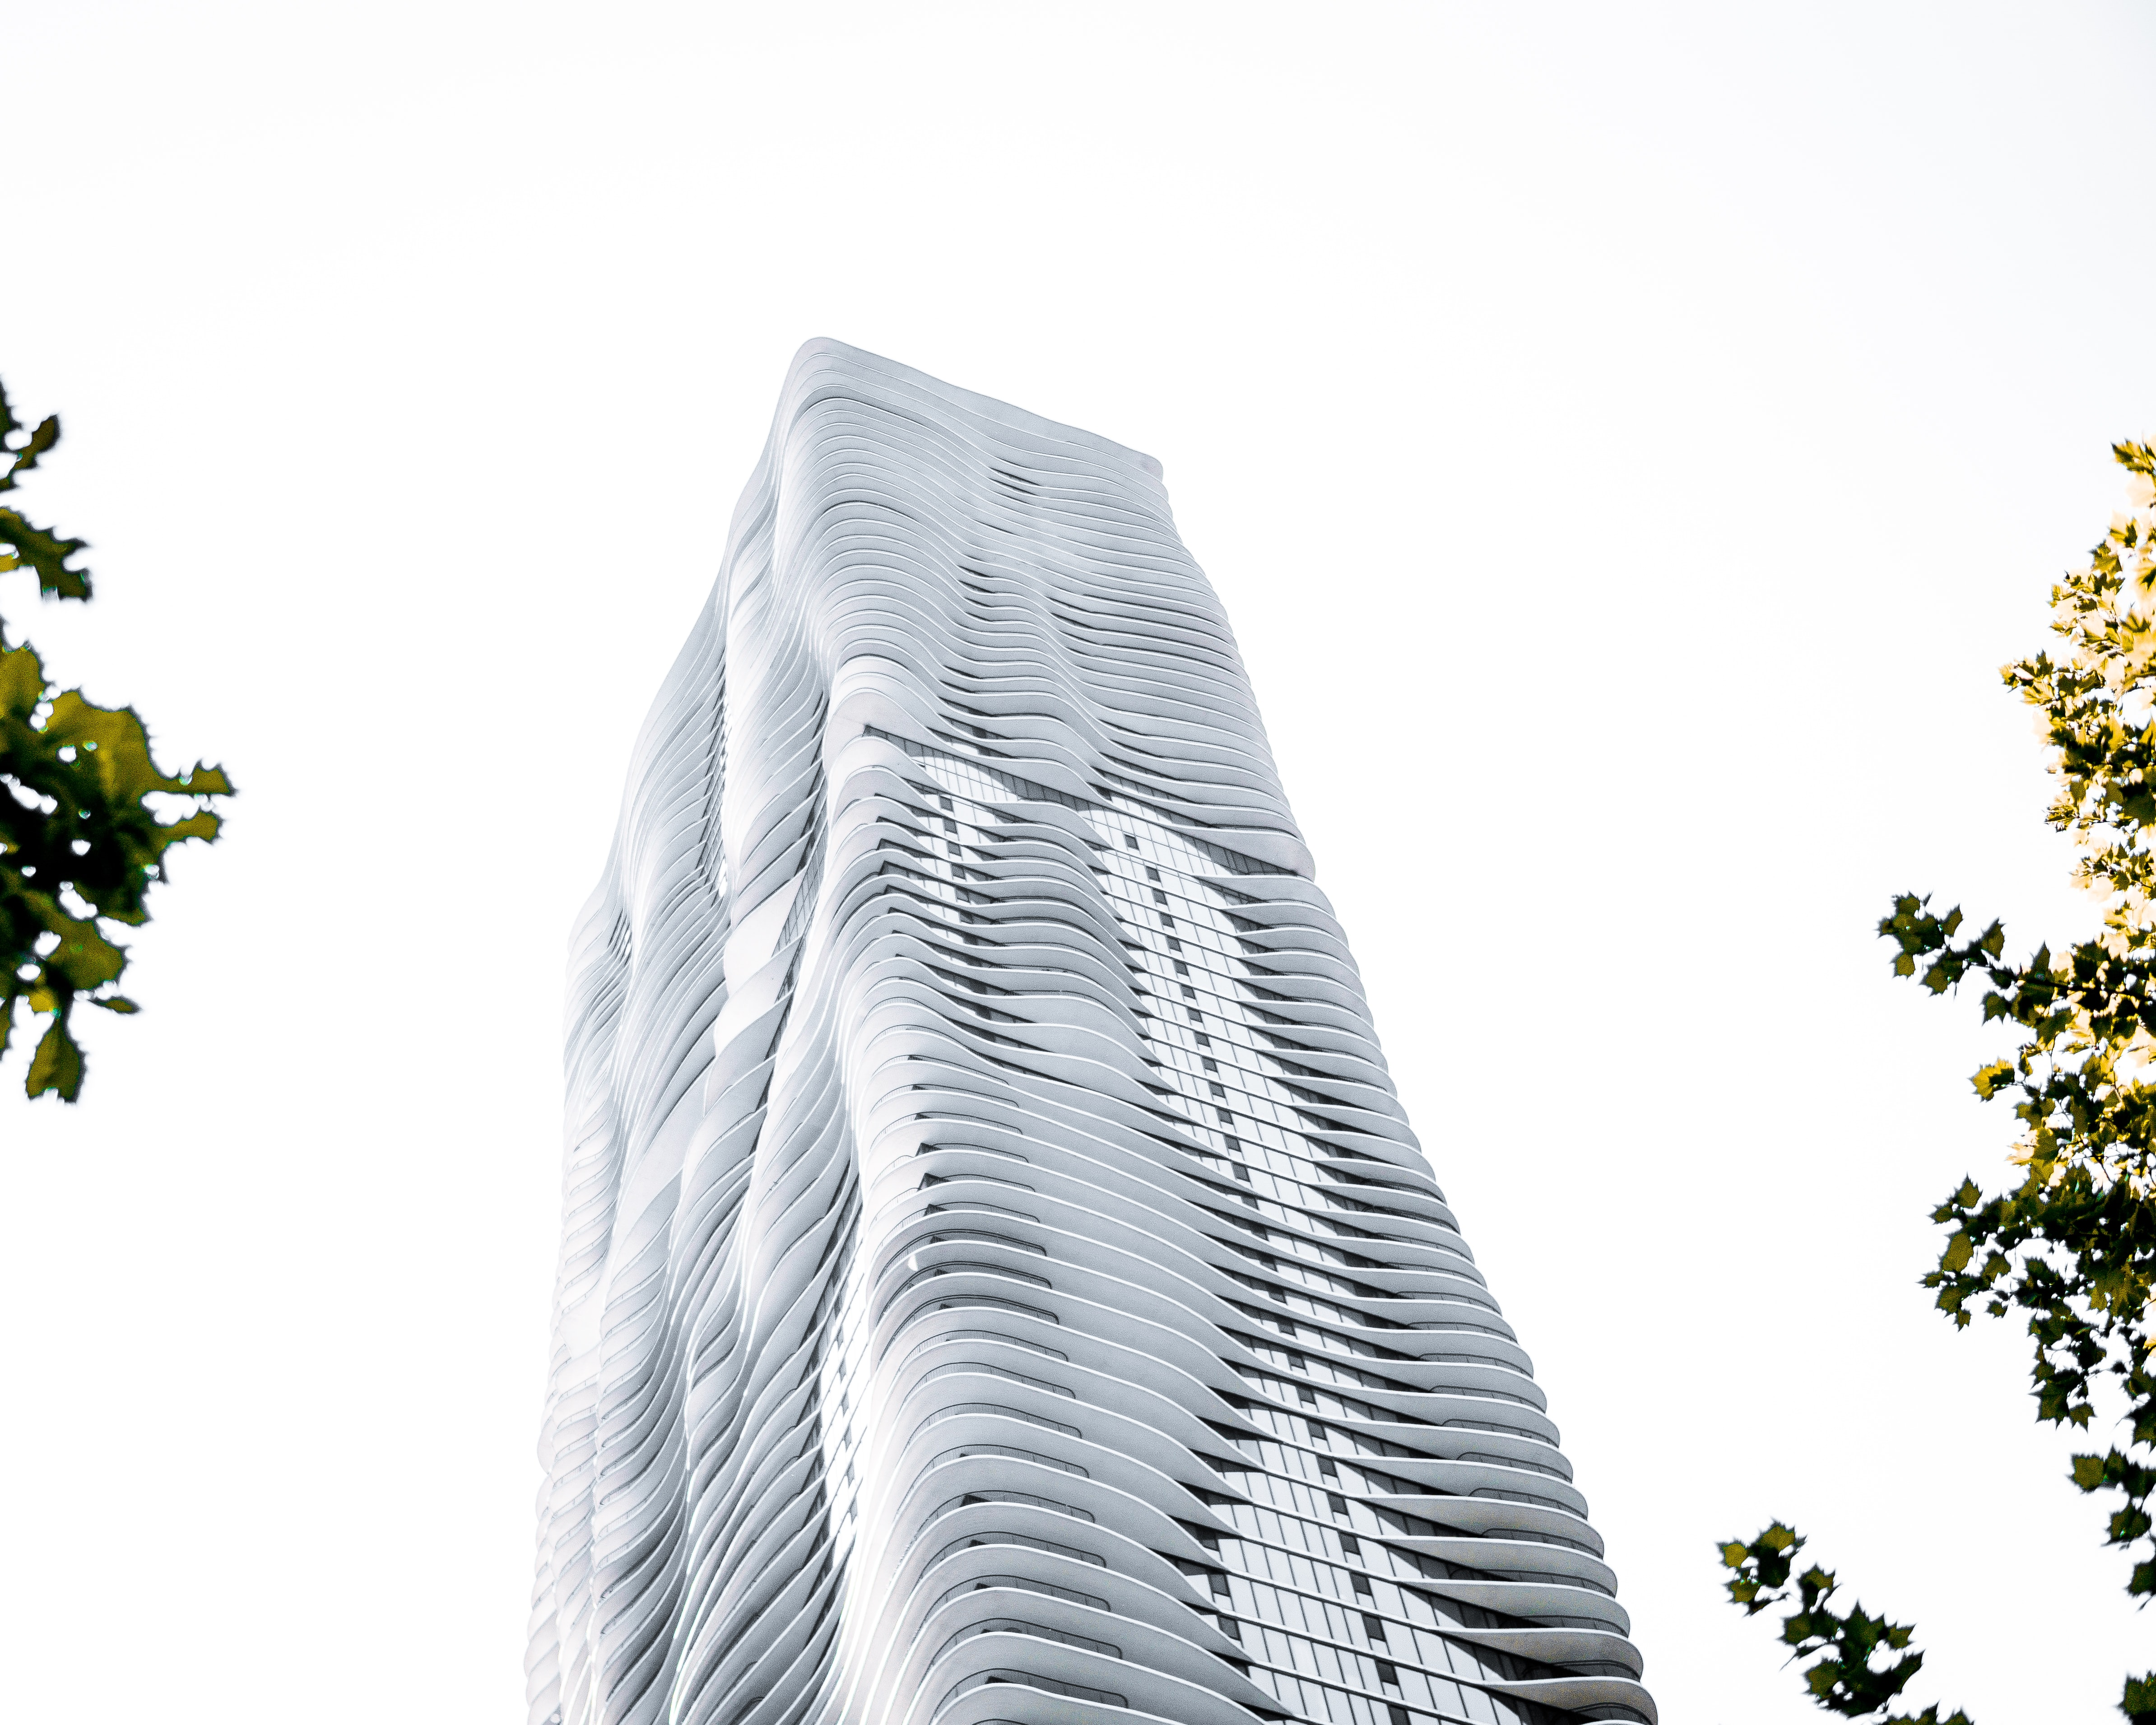 low angle photography of curtain building during daytime